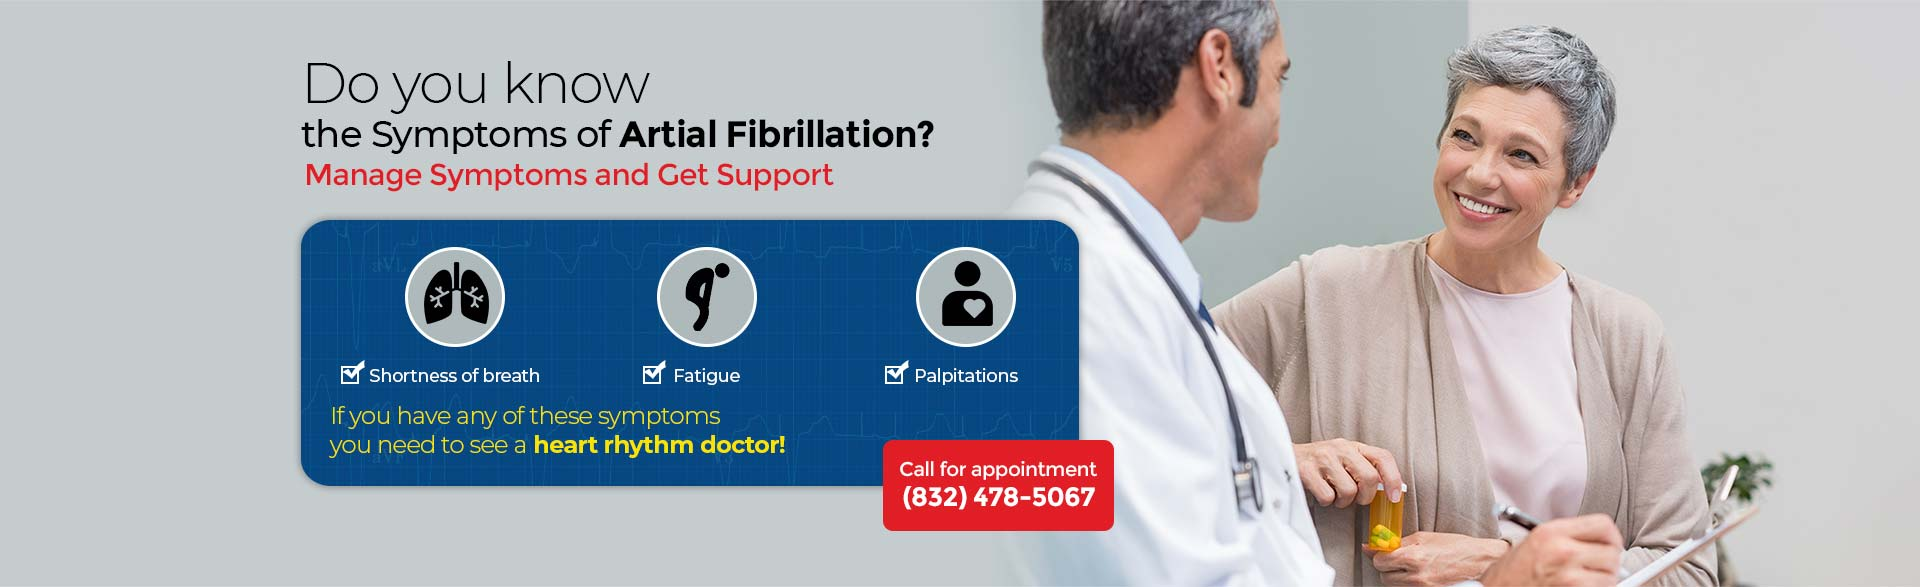 Atrial Fibrillation Manage Symptoms And Get Support